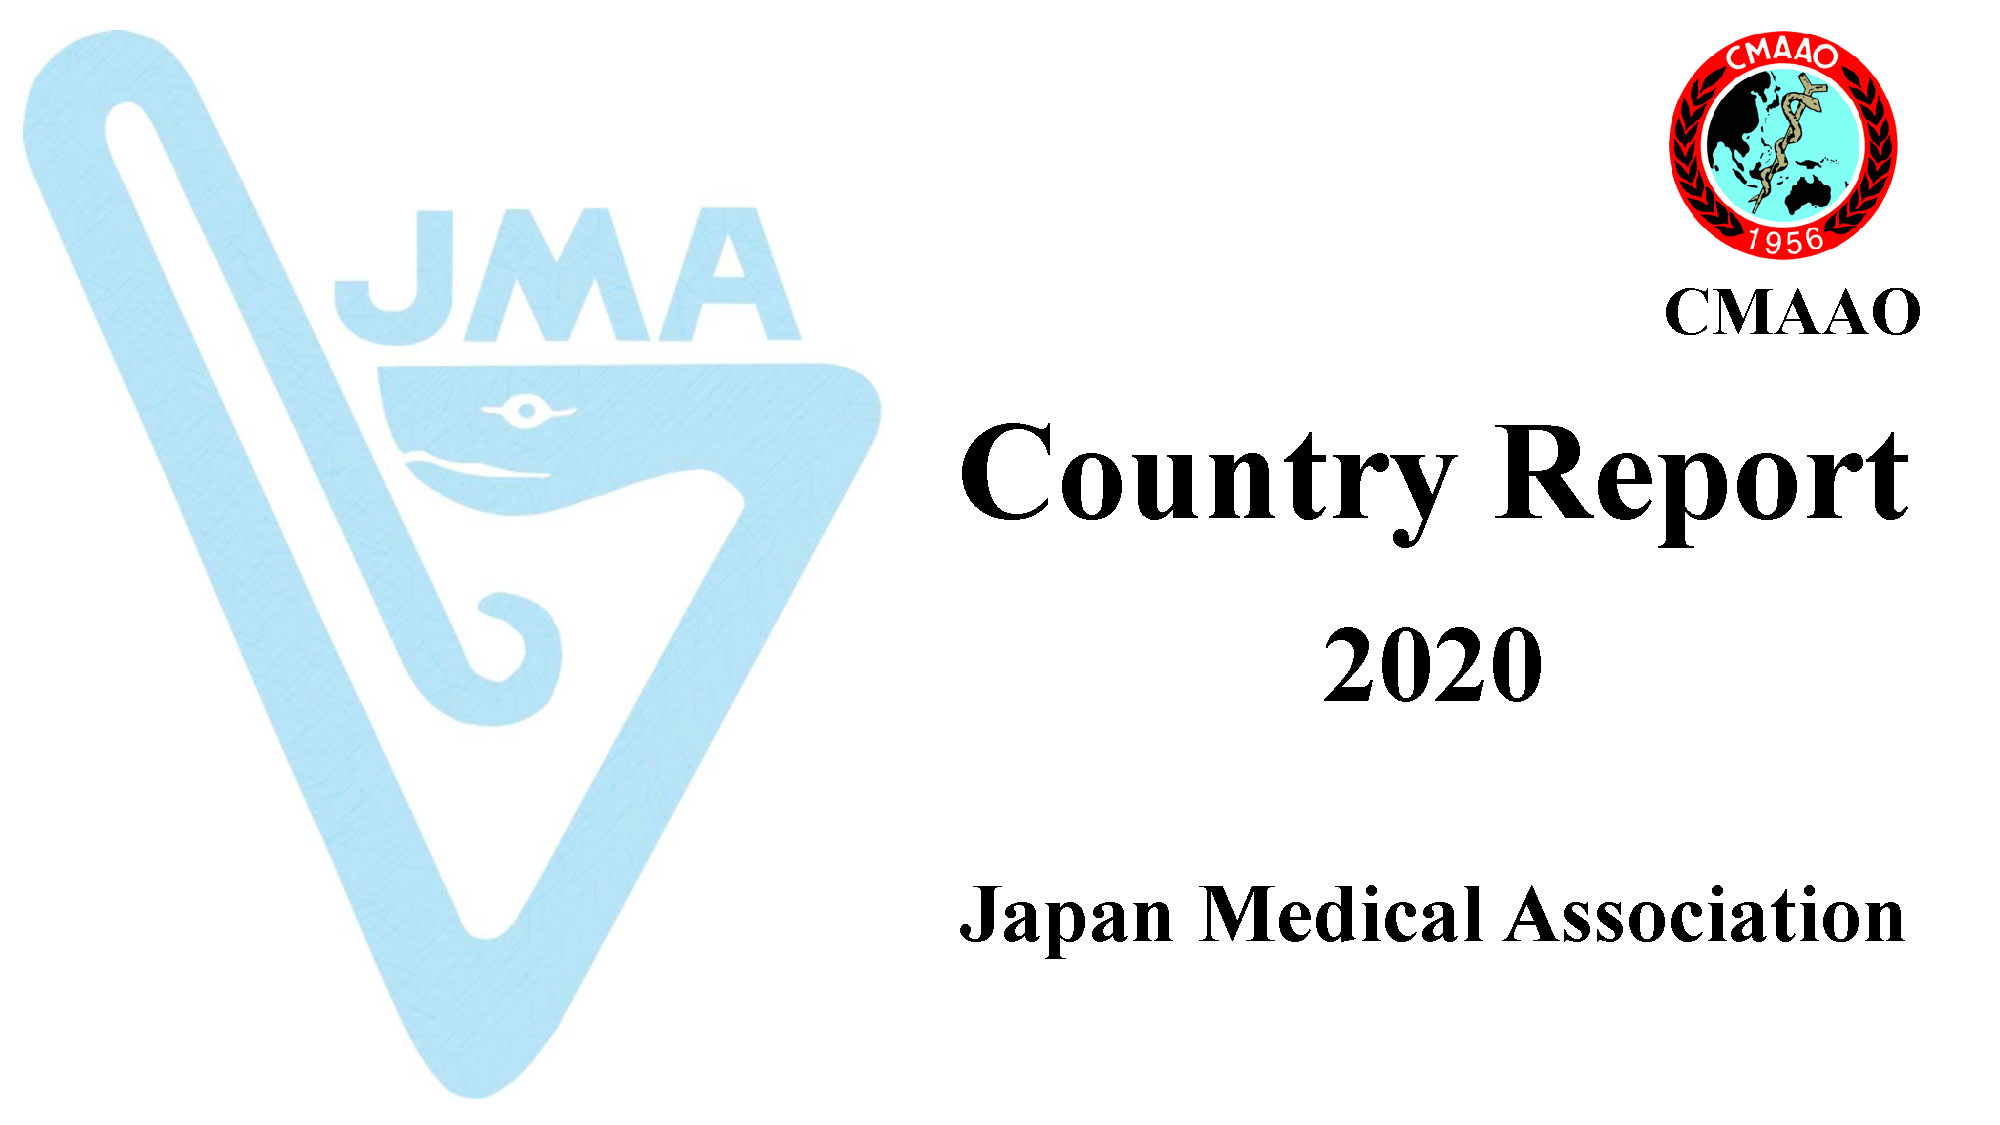 JAPAN_Country Report 2020